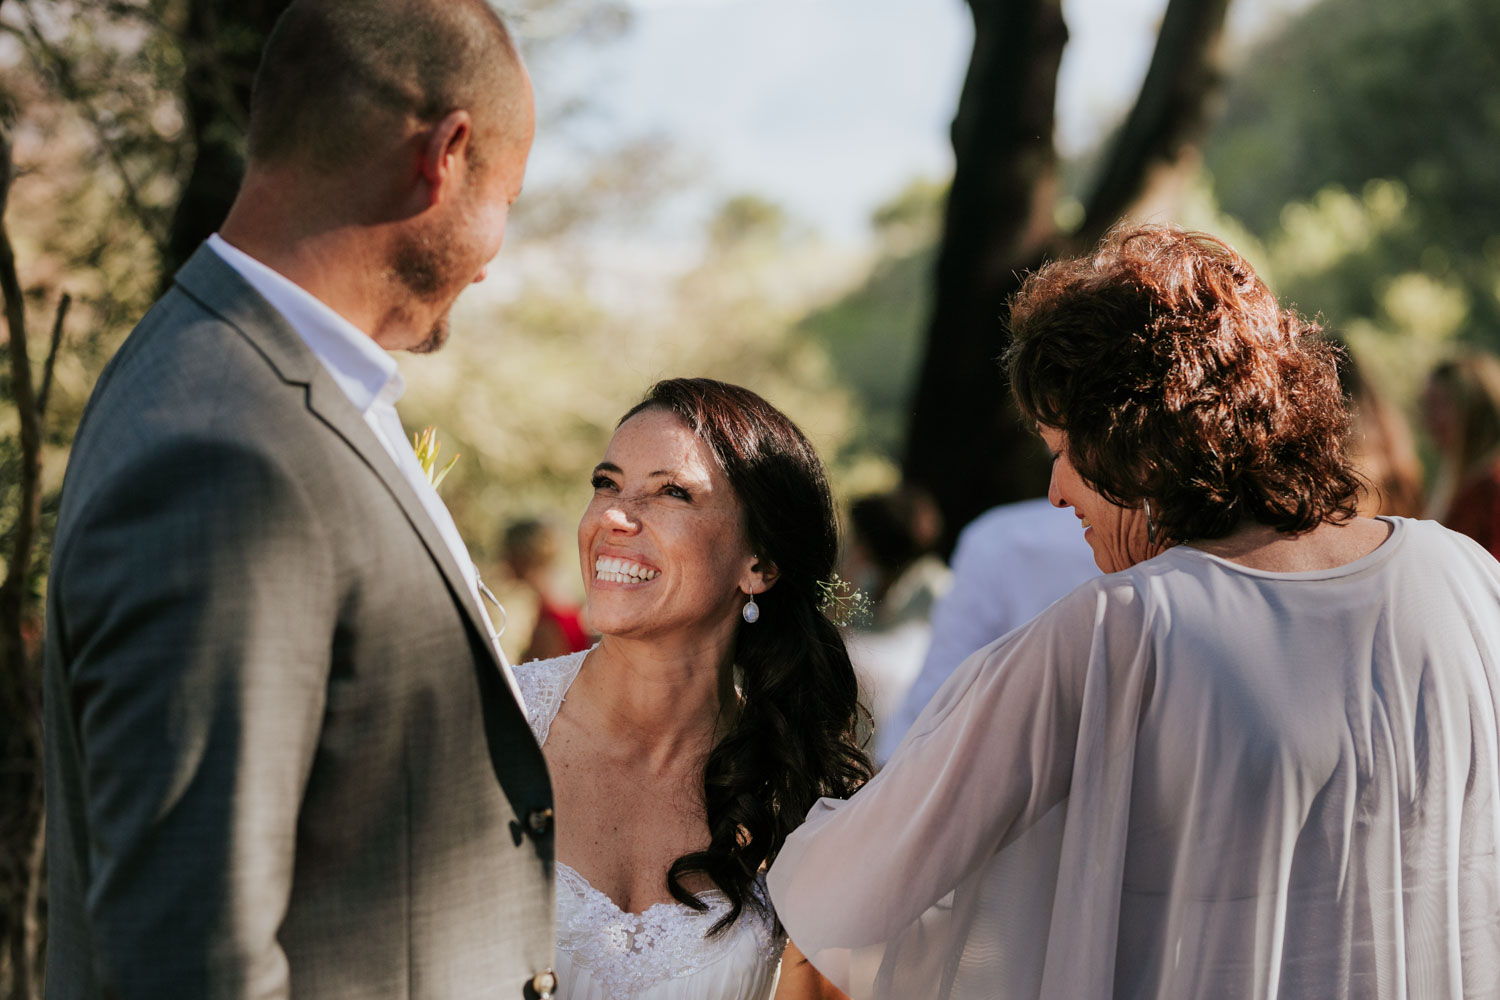 Bride's joyful and happy reaction towards her new husband after they have just got married